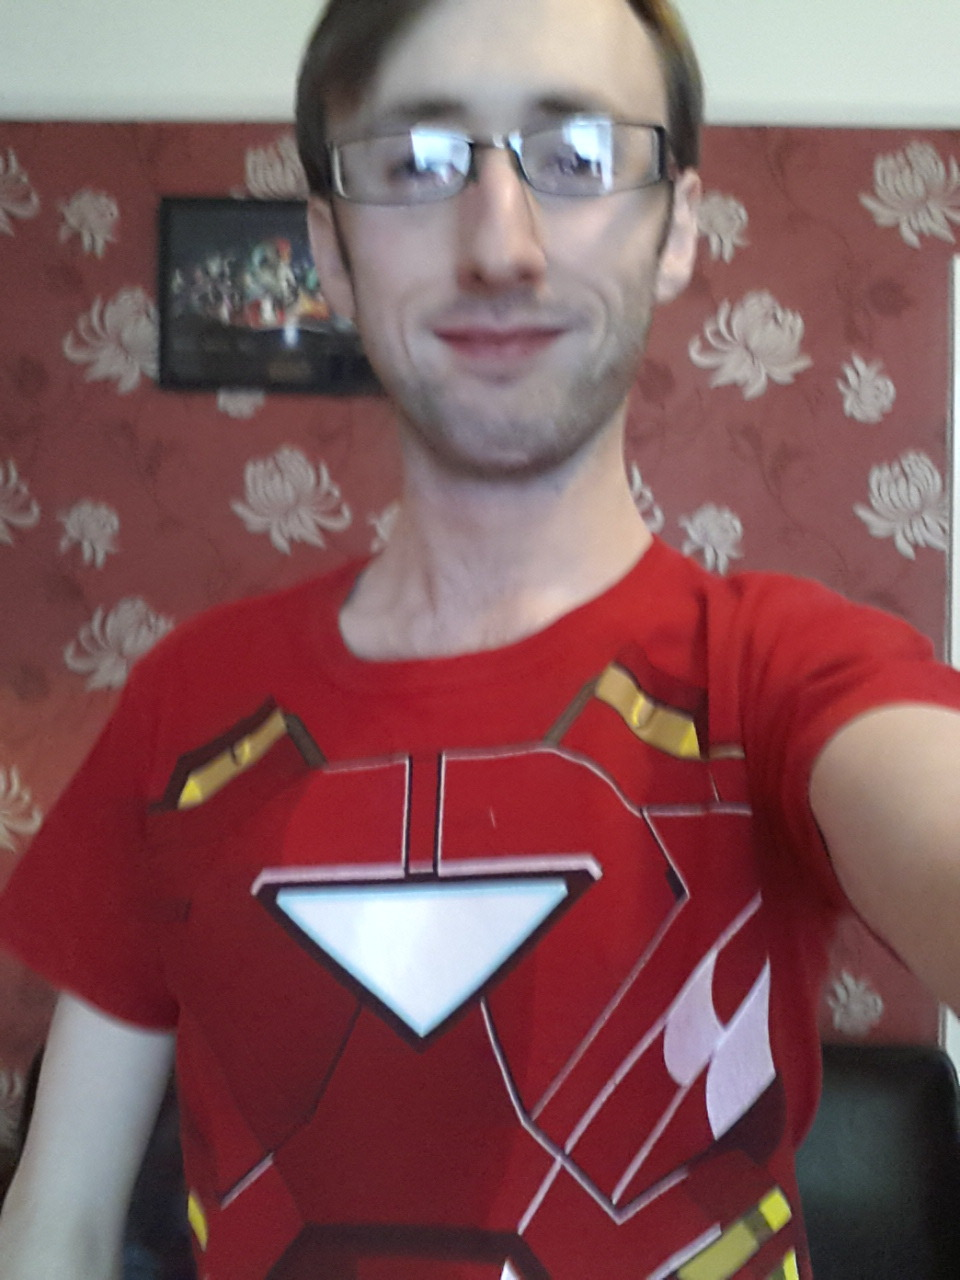 Iron Man 3 today. T-Shirt seemed somewhat appropriate